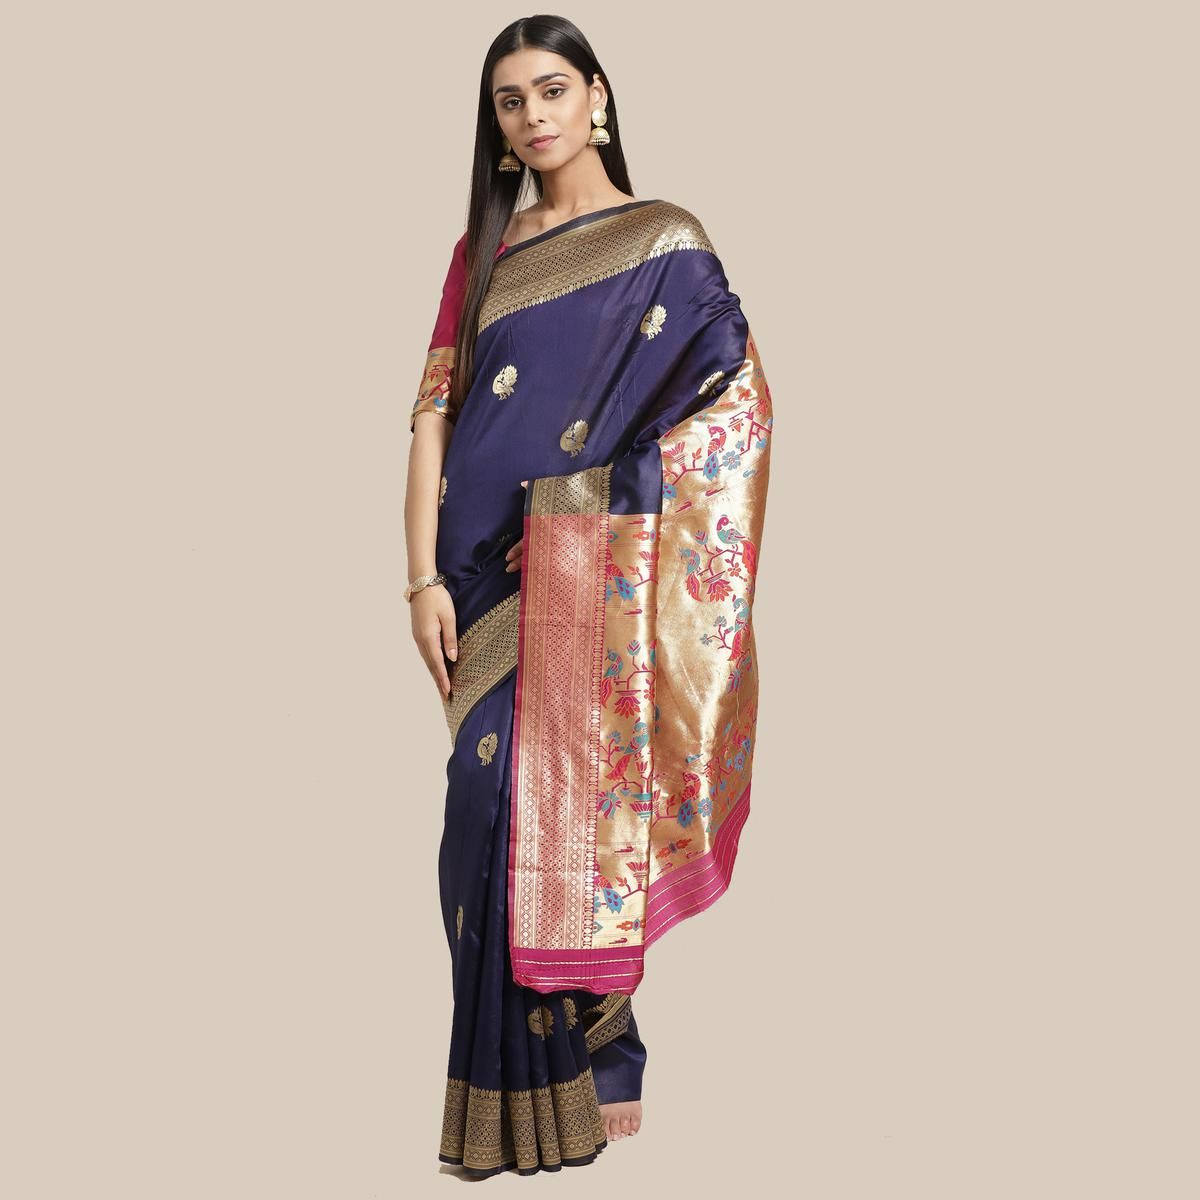 Majesty Navy Blue Colored Festive Wear Woven Silk Blend Saree